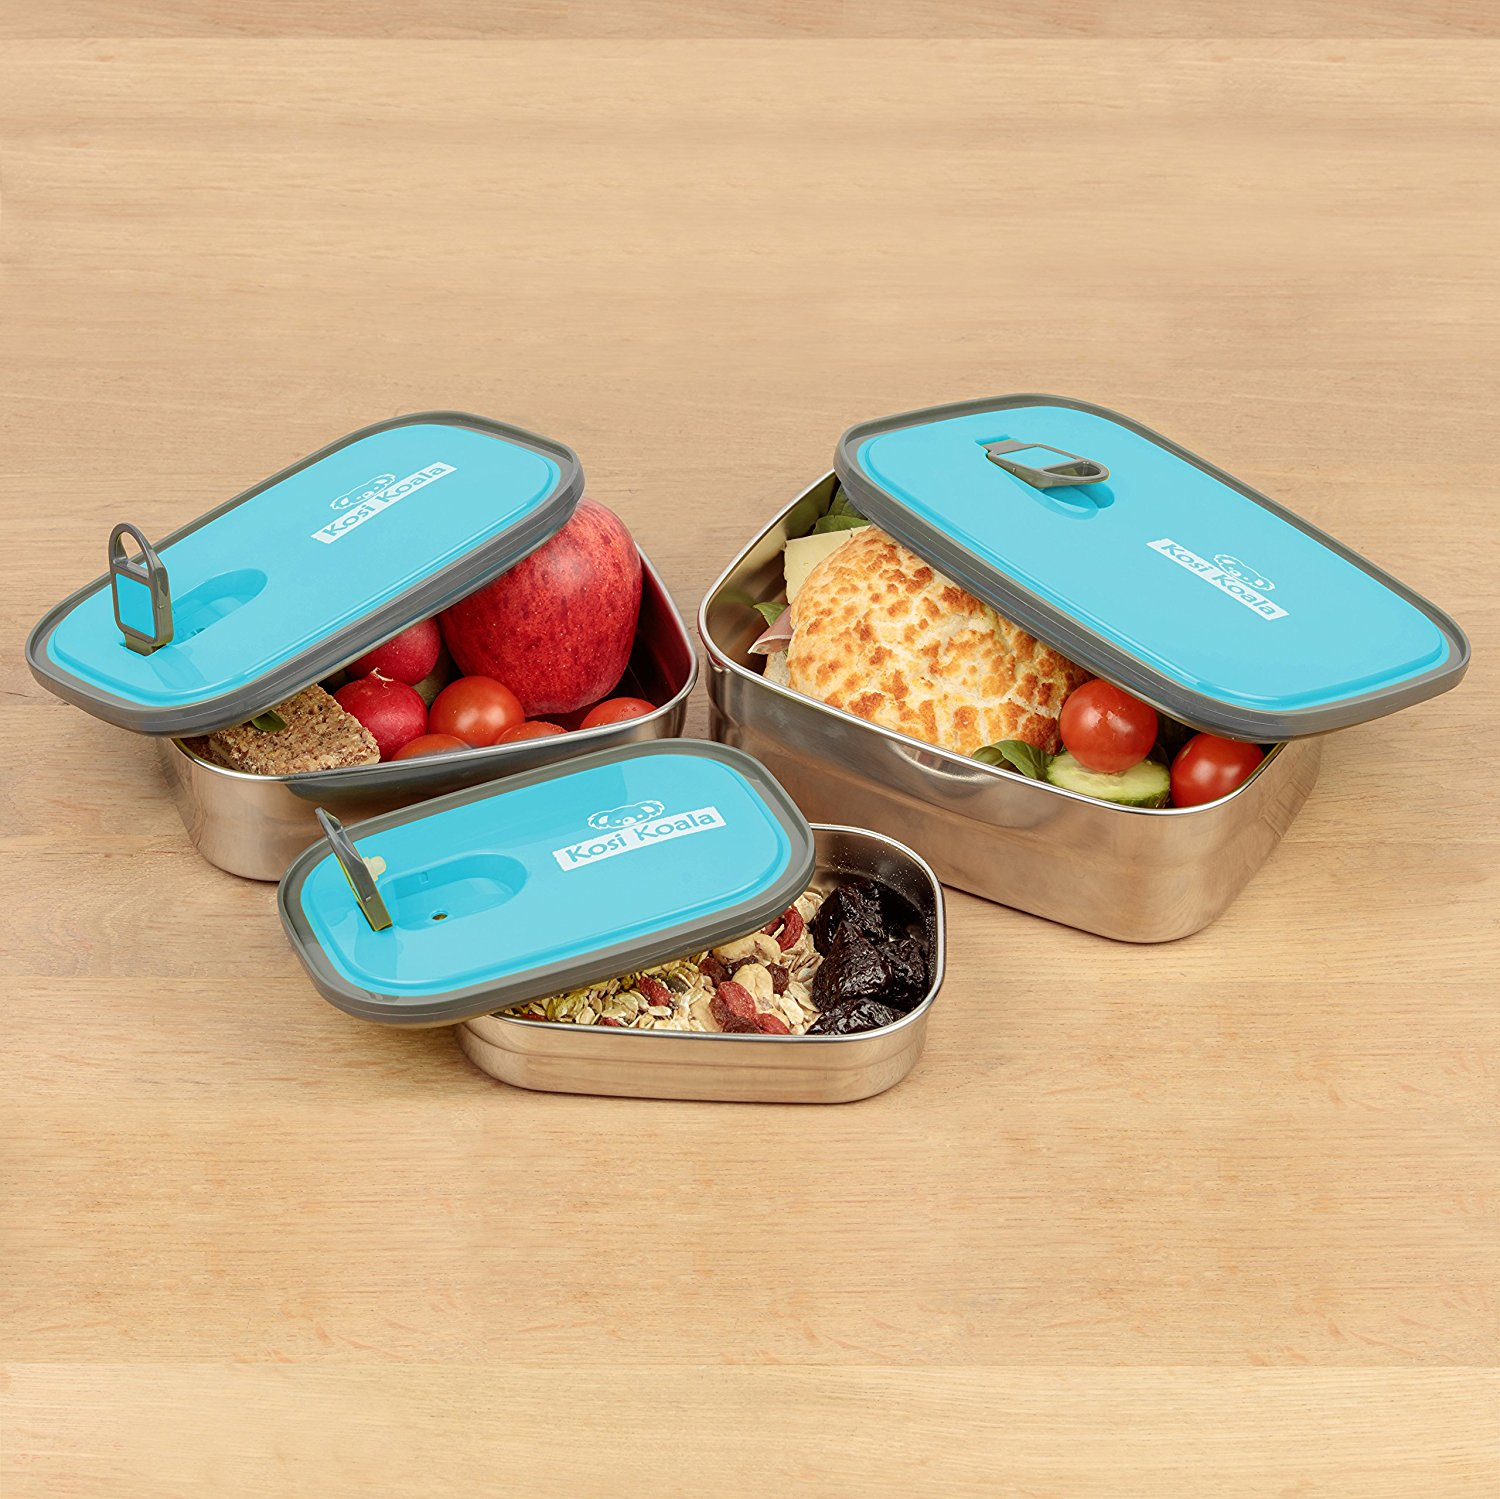 bento lunch box stainless steel food containers blue set of 3 best offer. Black Bedroom Furniture Sets. Home Design Ideas